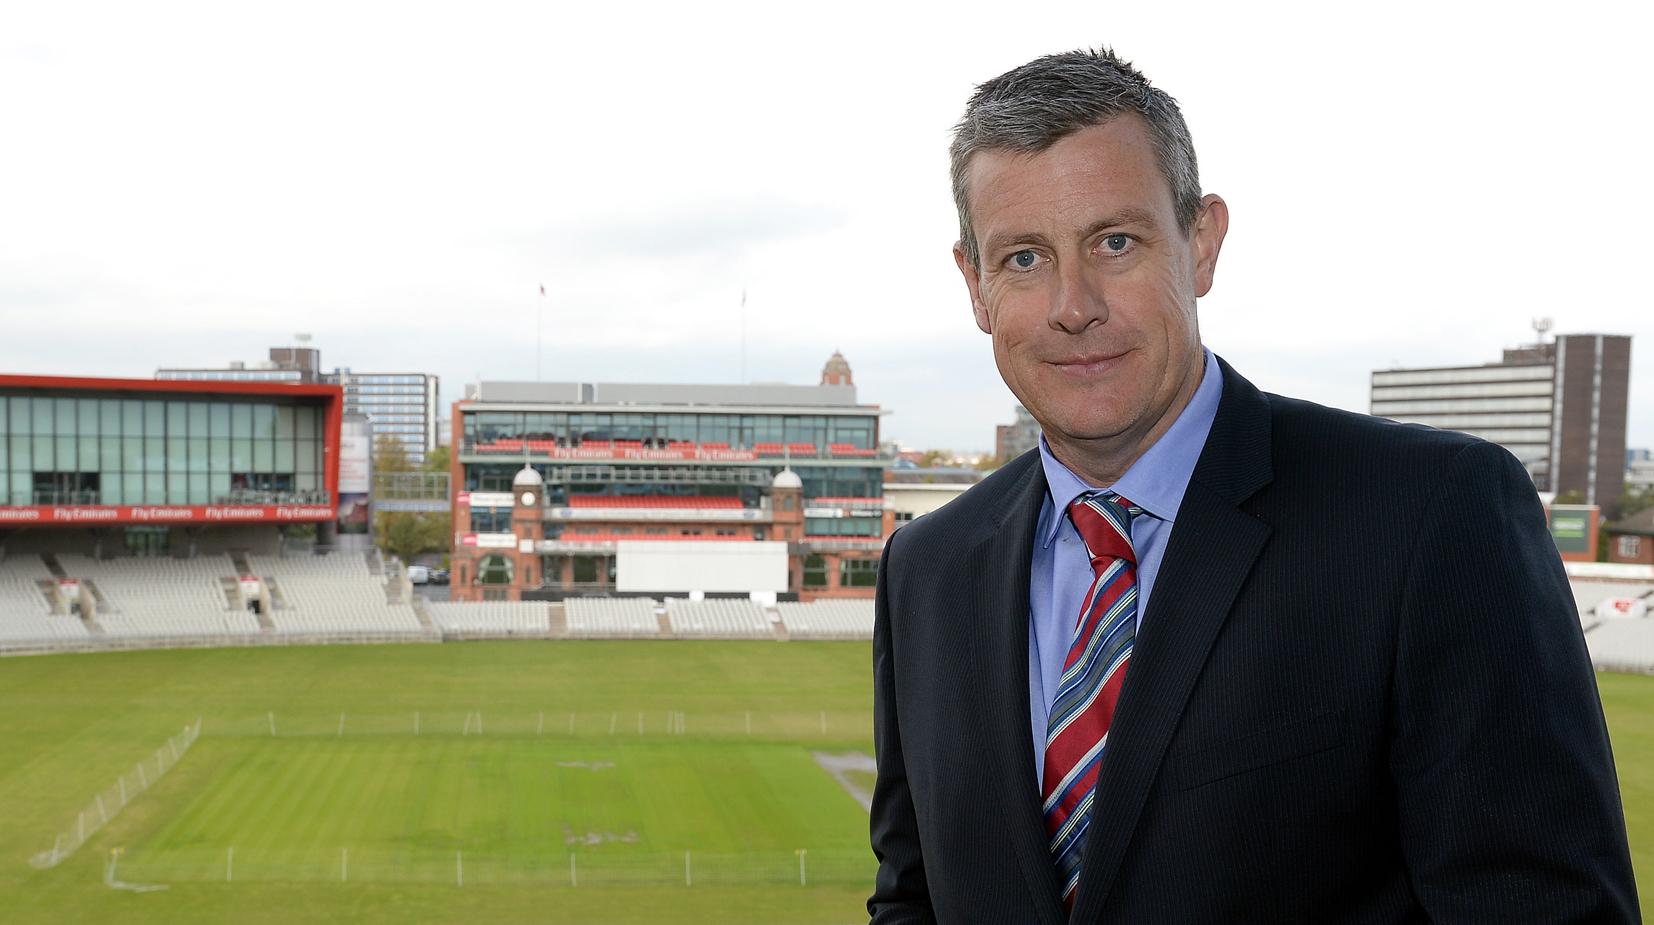 Ashley Giles, pictured at Old Trafford Cricket Ground, Lancashire..